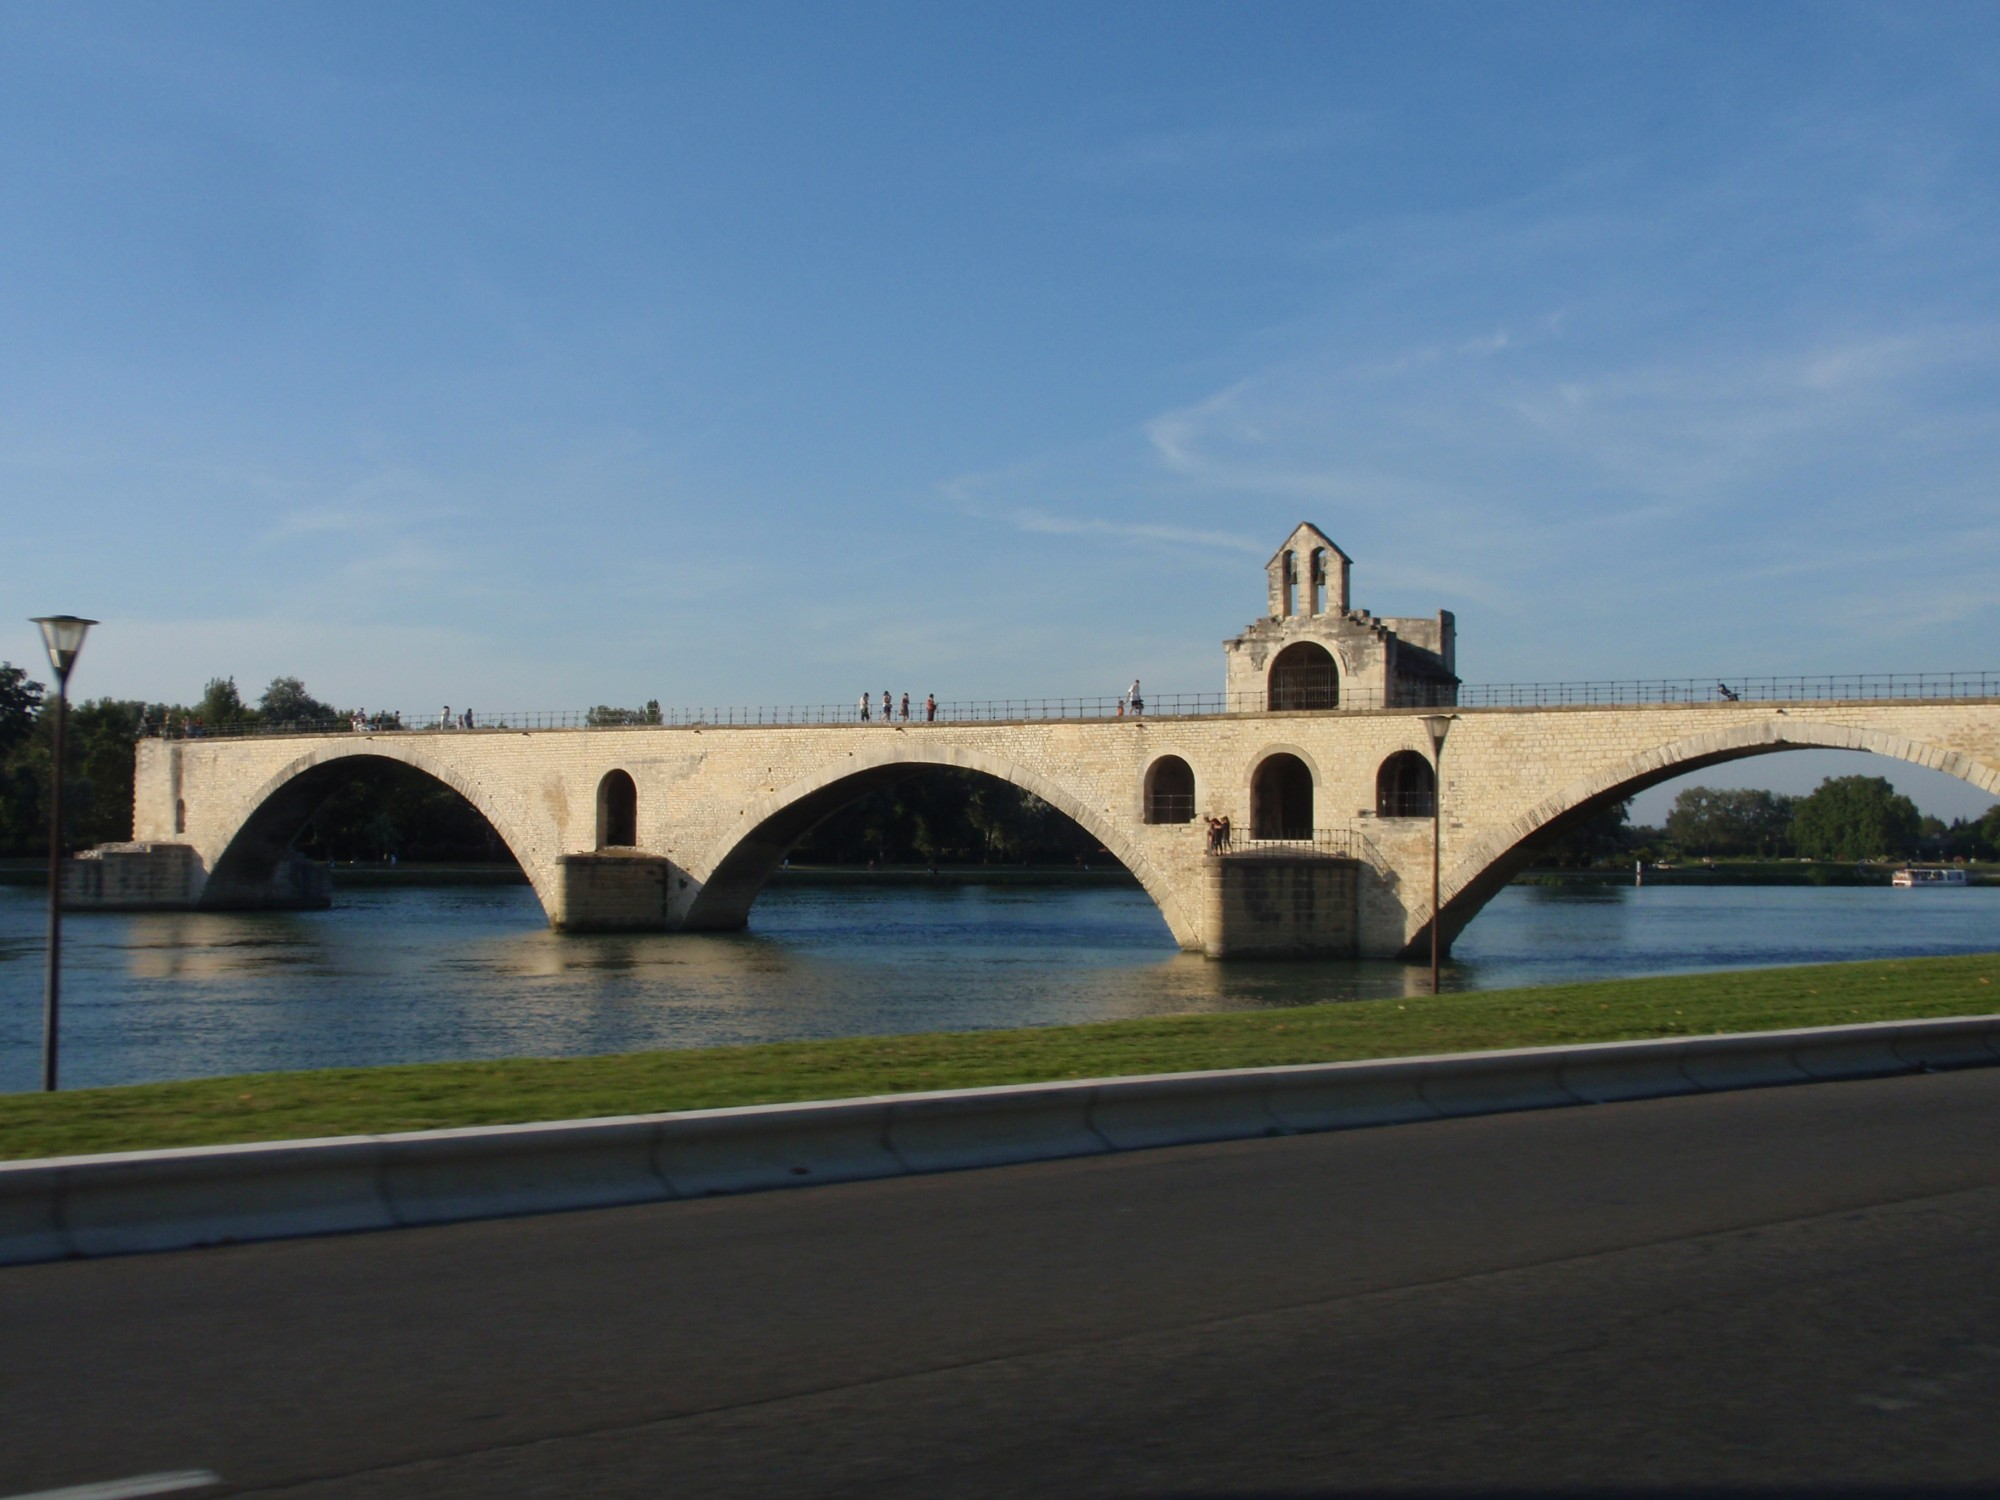 Saint Bénézet bridge, the legendary Pont d'Avignon